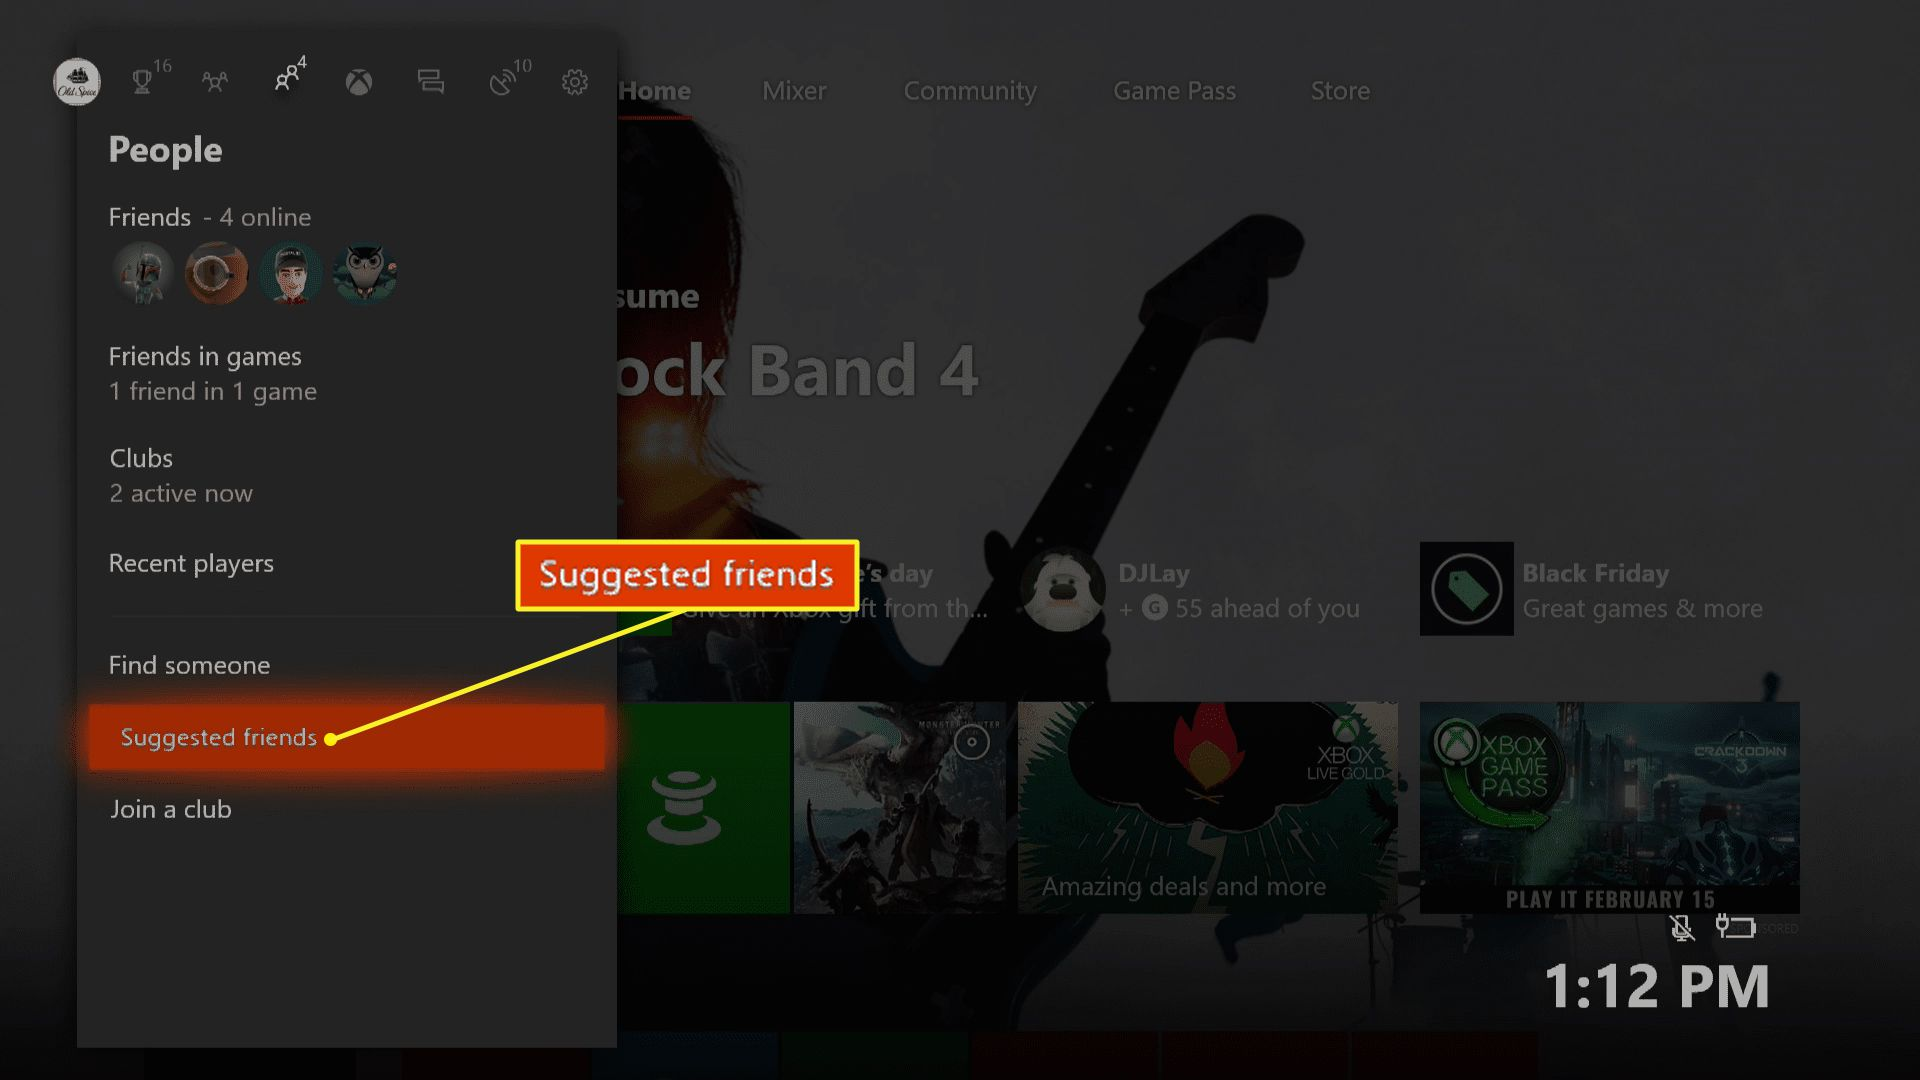 Xbox One People menu with Suggested friends highlighted